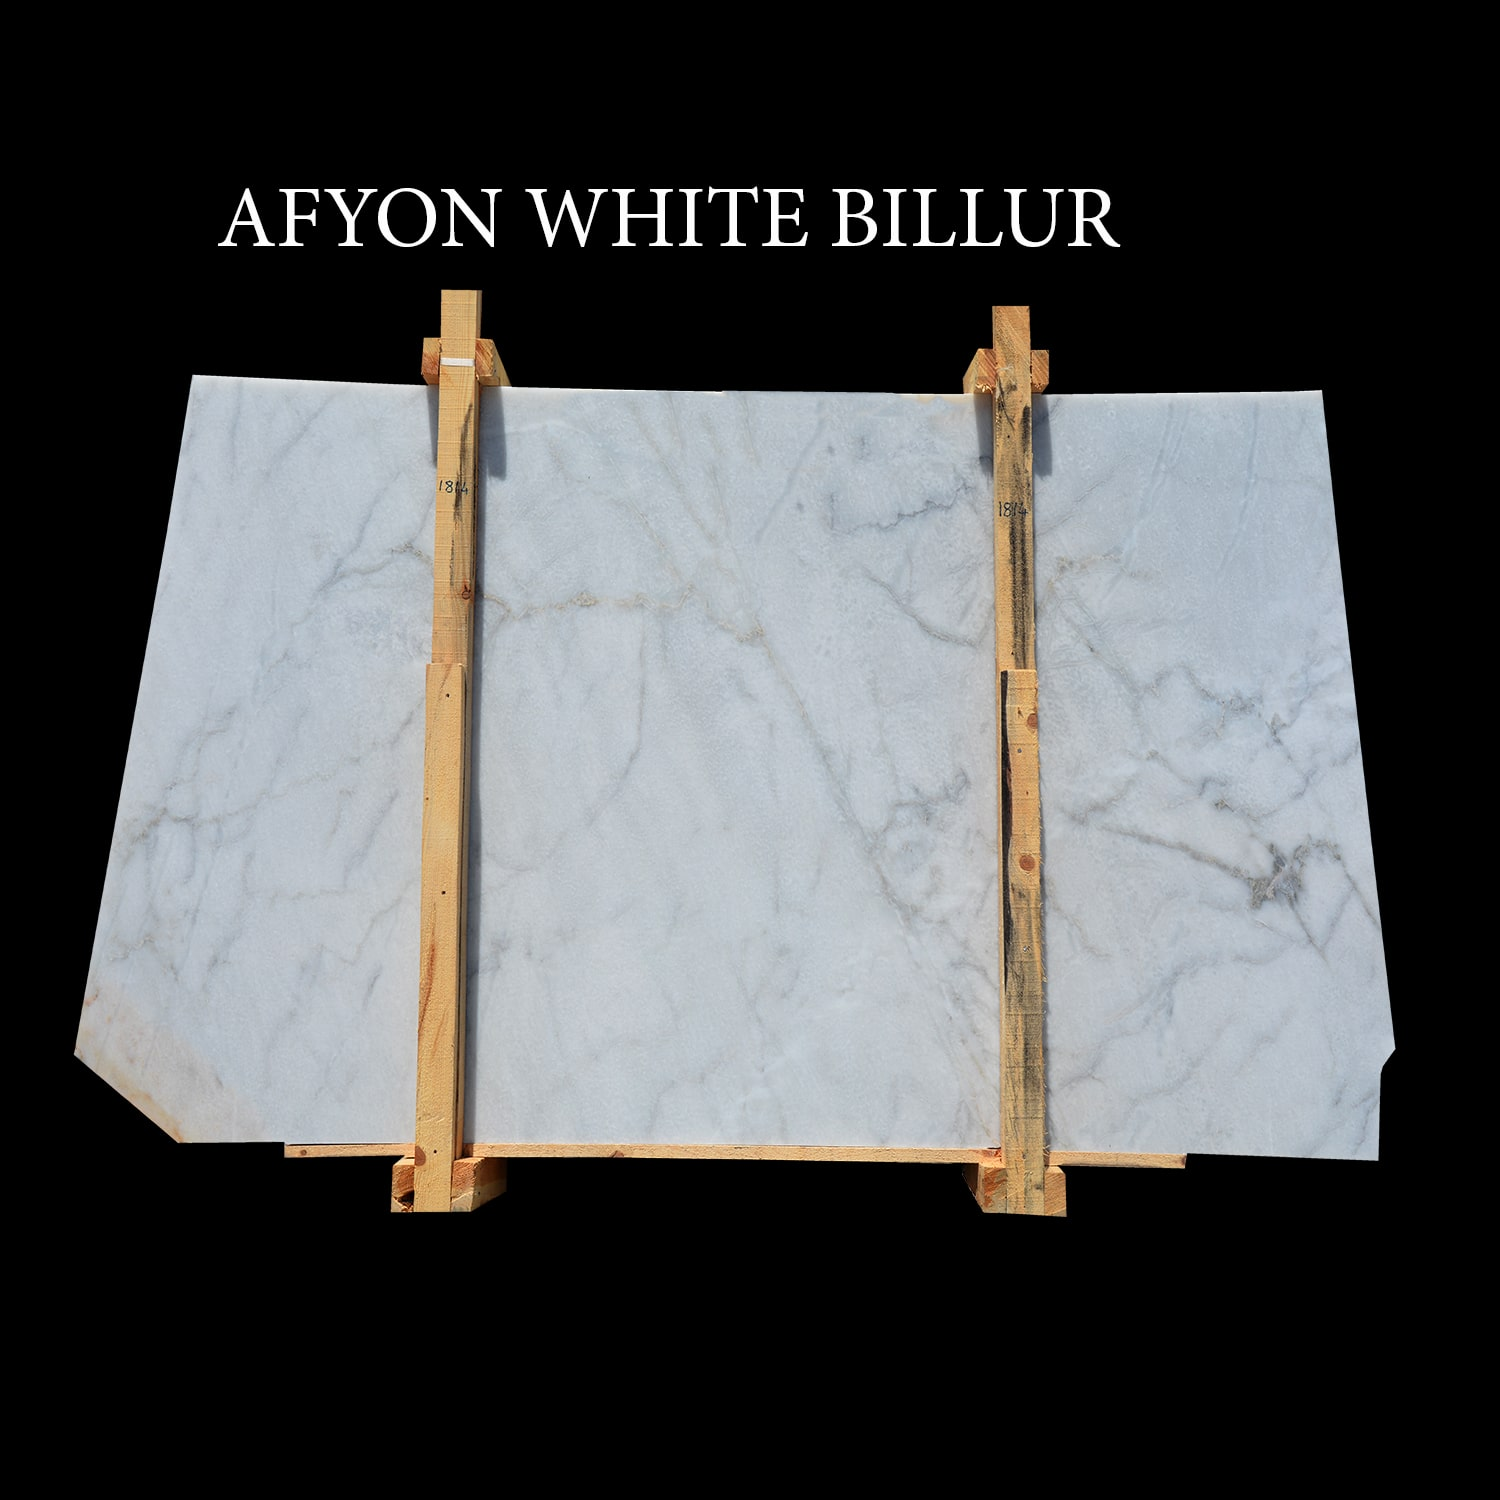 Afyon White Slabs Billur Slabs